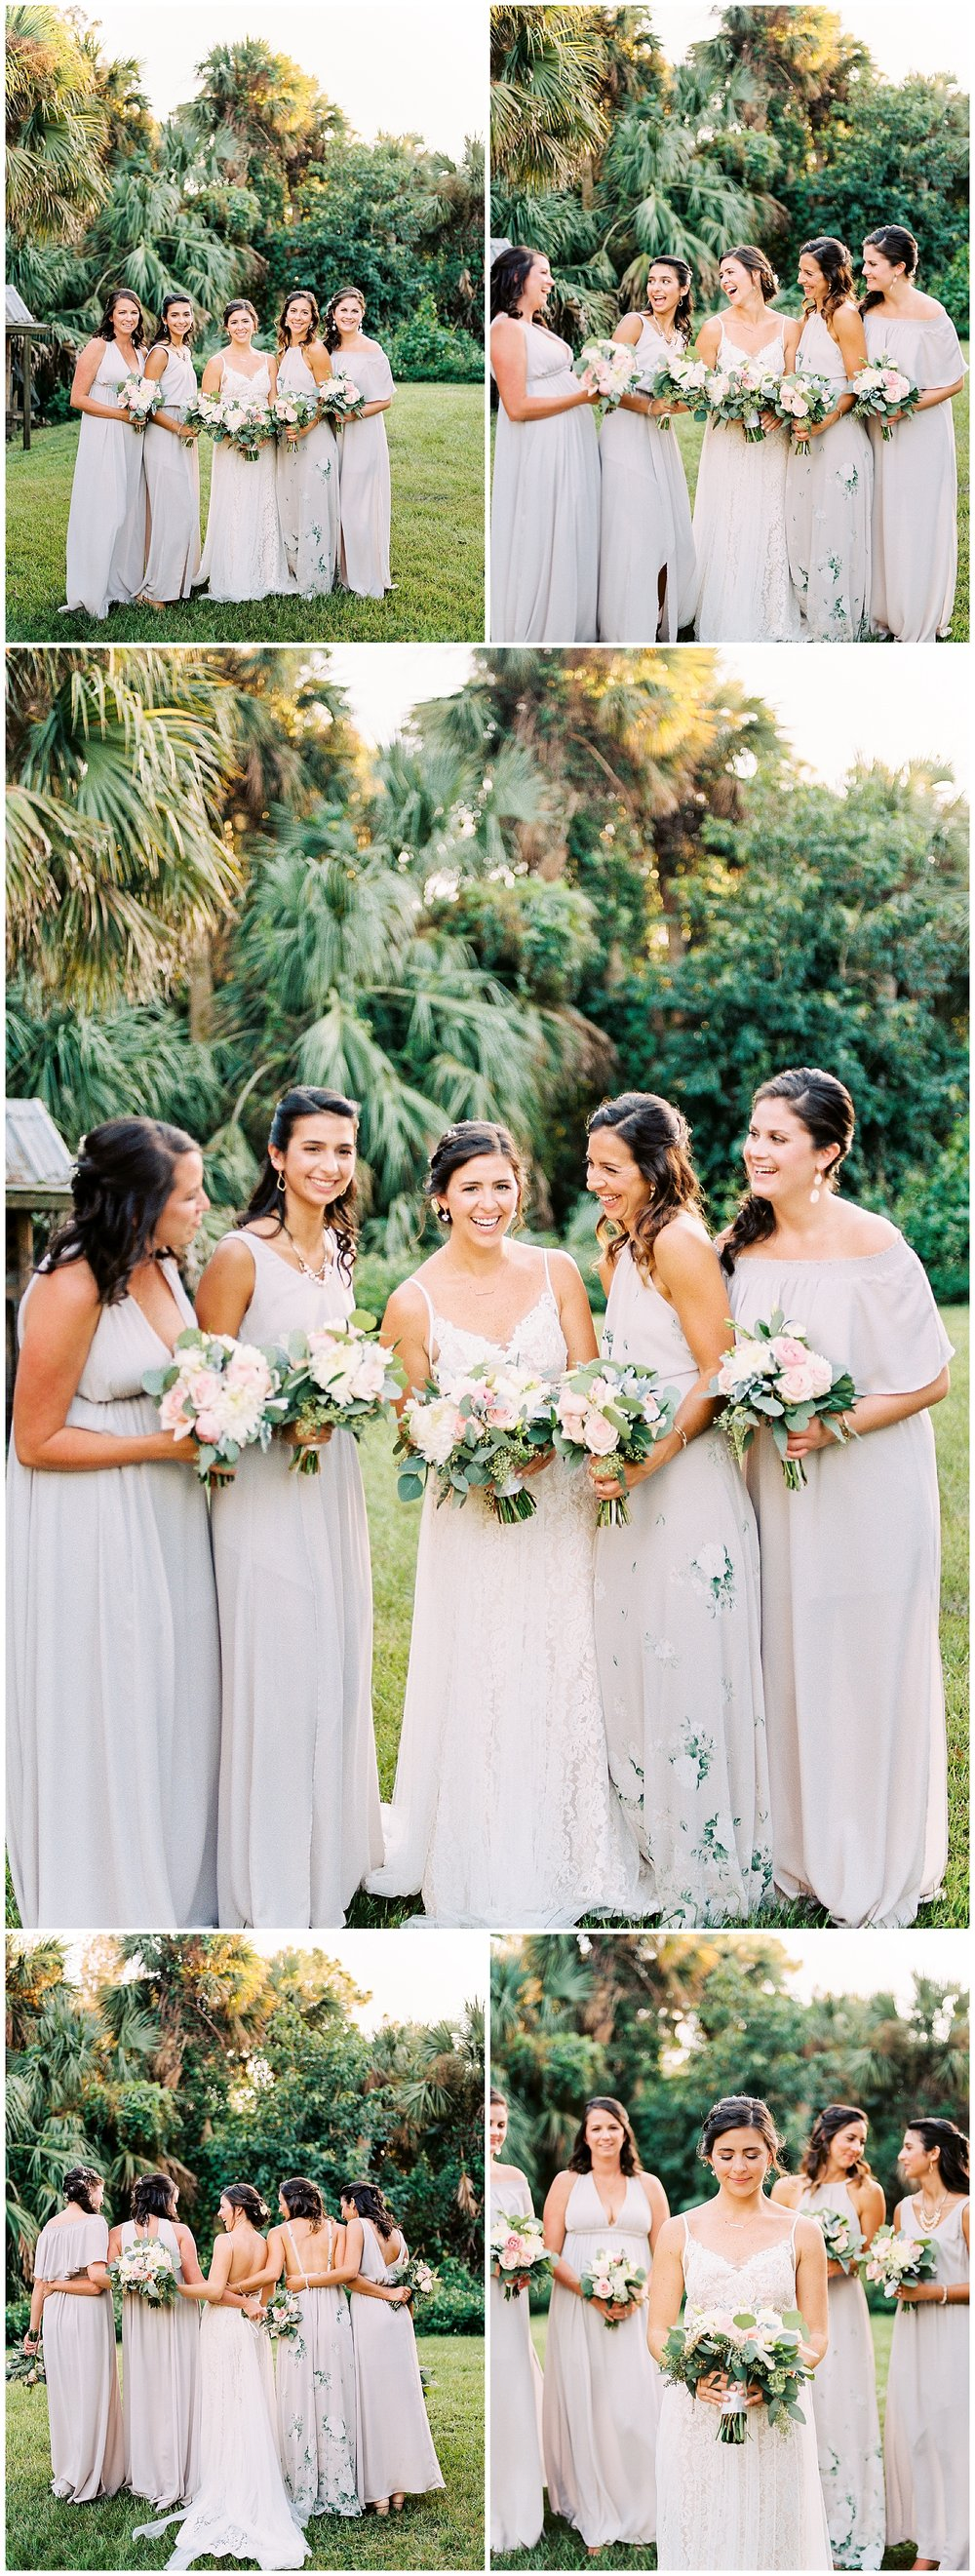 banyan estate malabar palm bay fl bridal party bridesmaids wedding photos